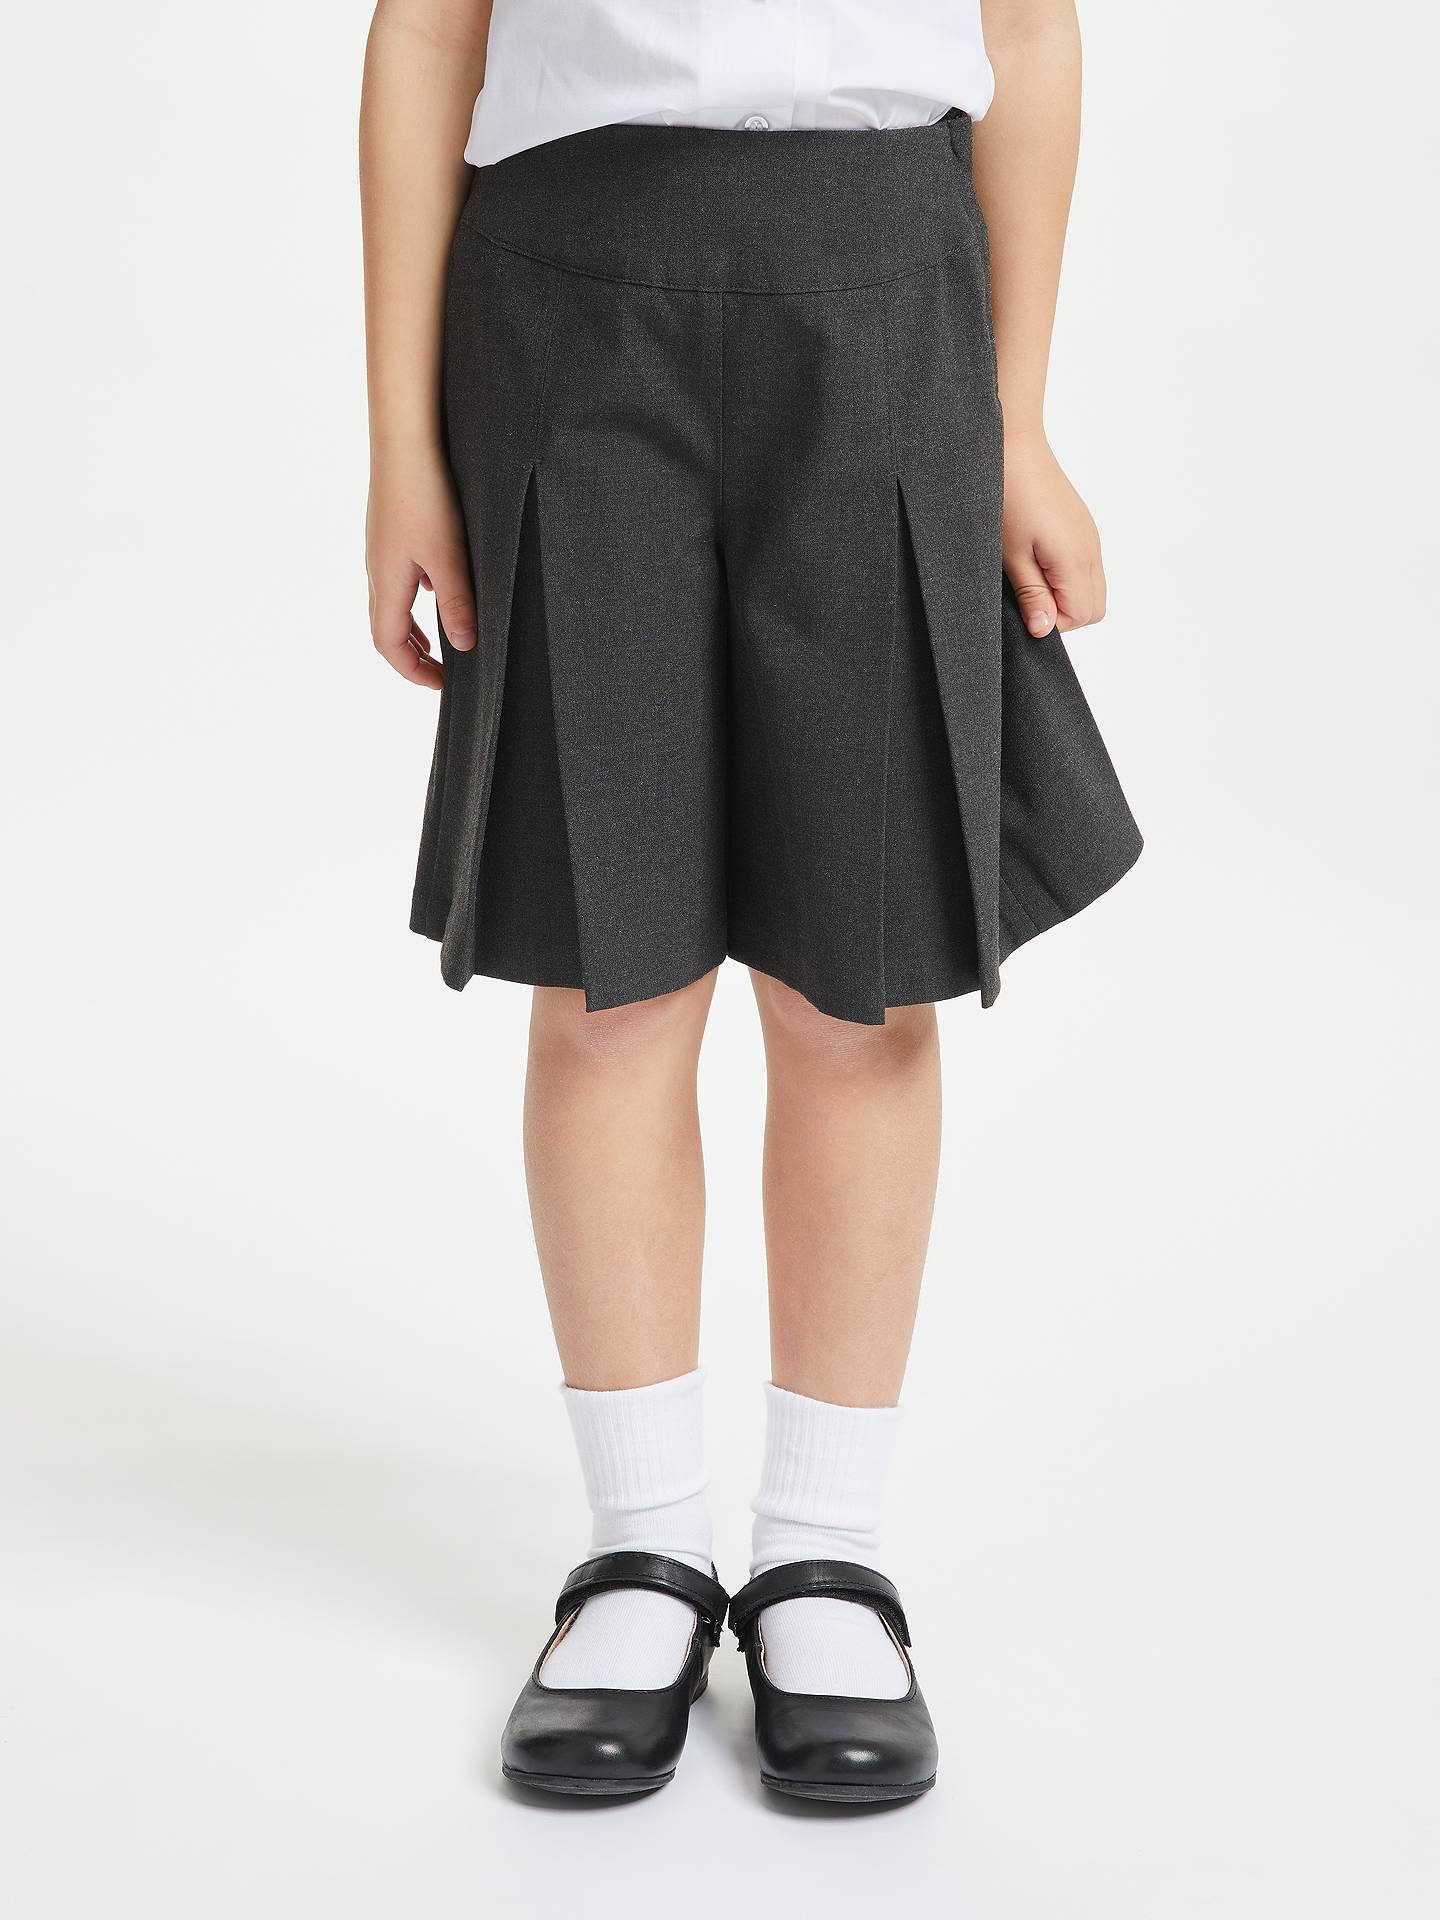 Buy John Lewis & Partners Girls' Adjustable Waist School Culottes, Grey, 5 years Online at johnlewis.com